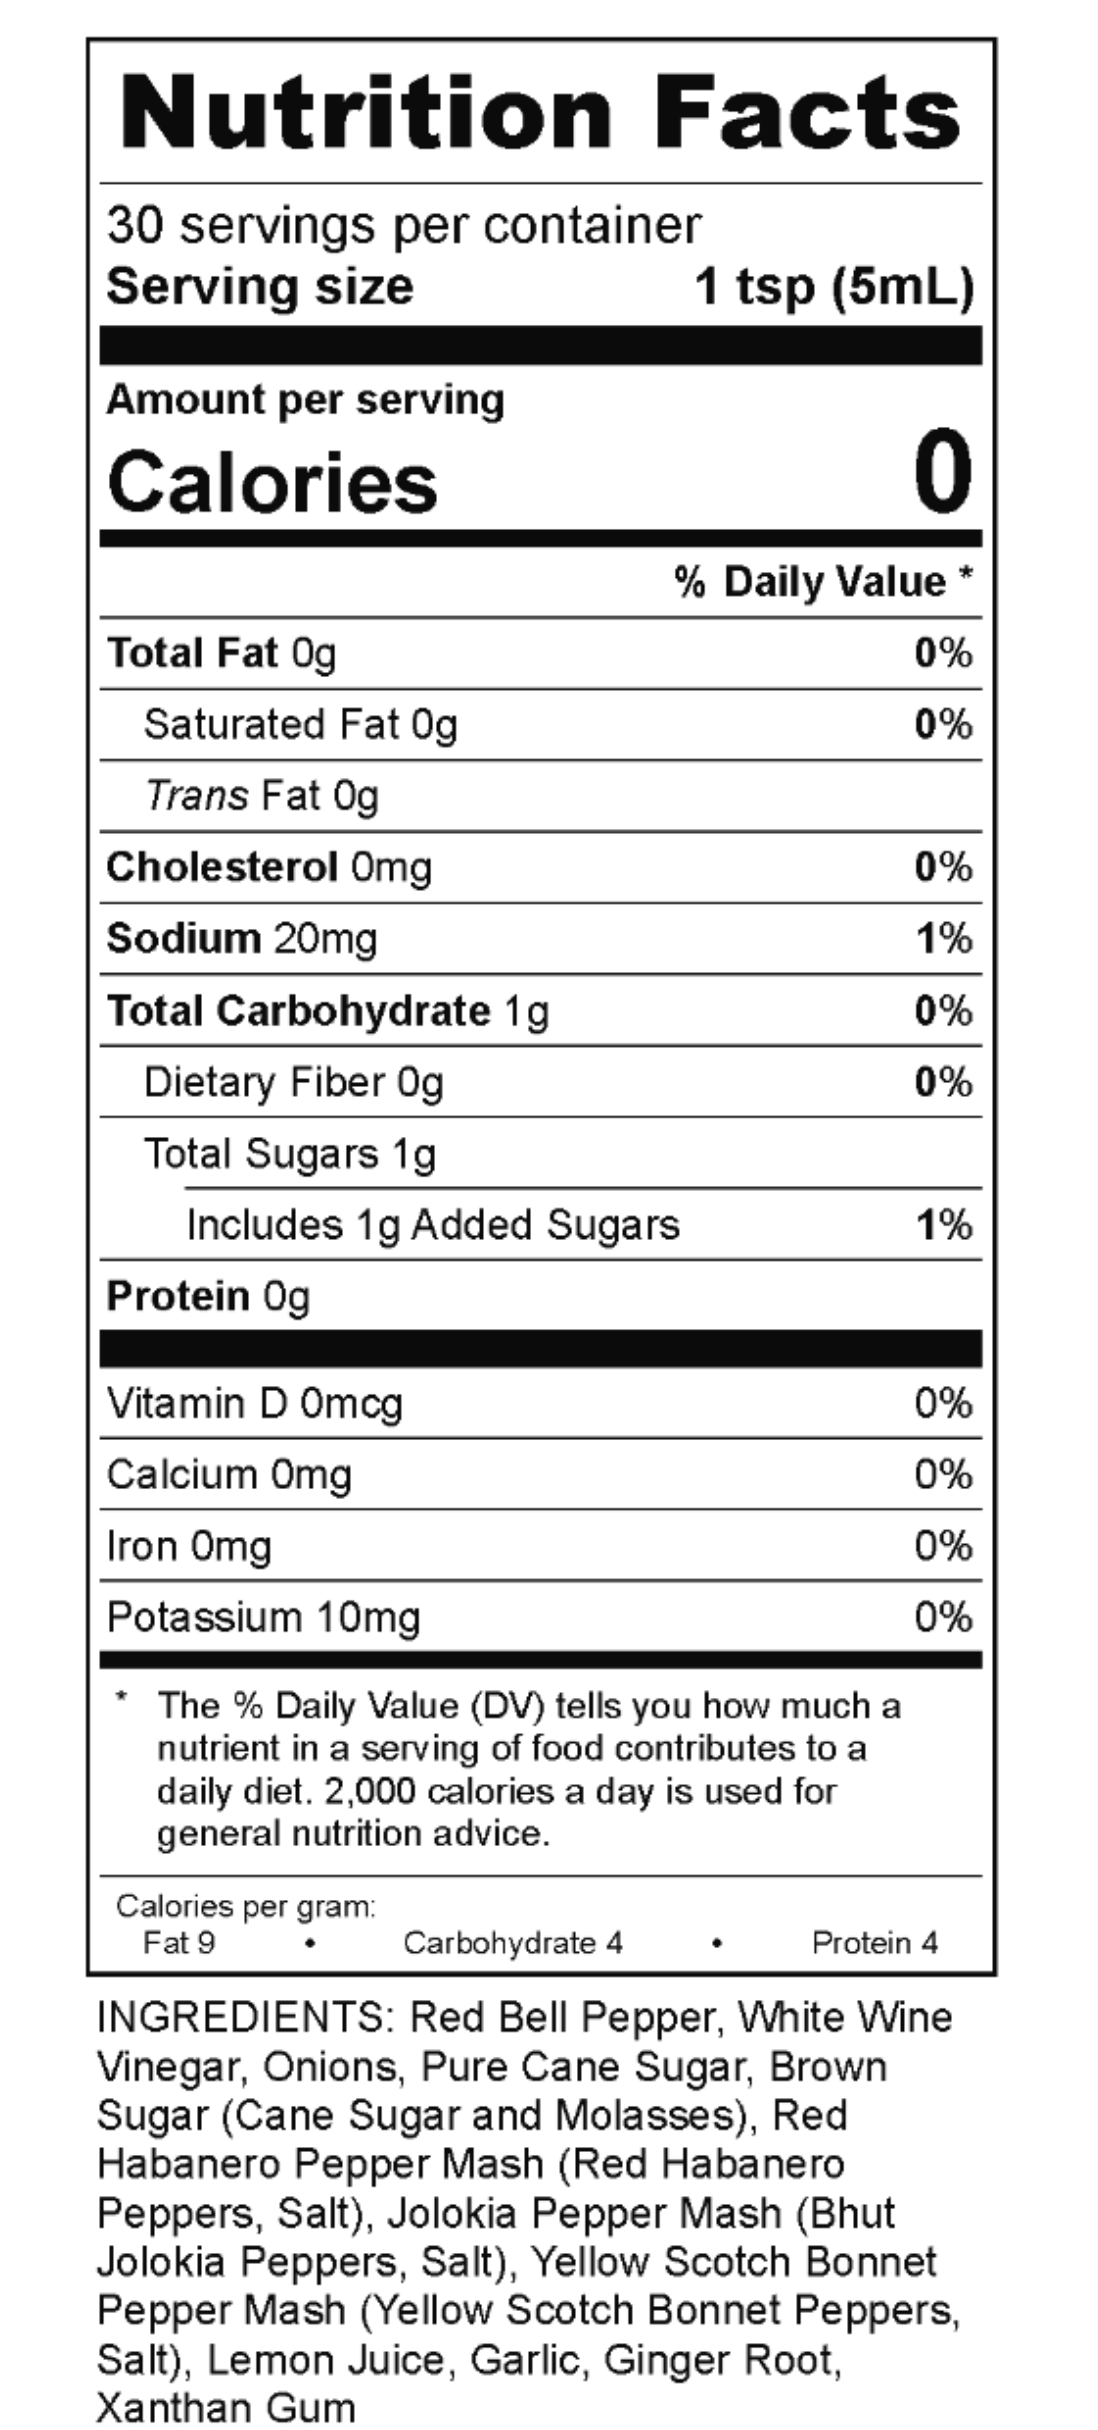 Mule Sauce nutrition facts